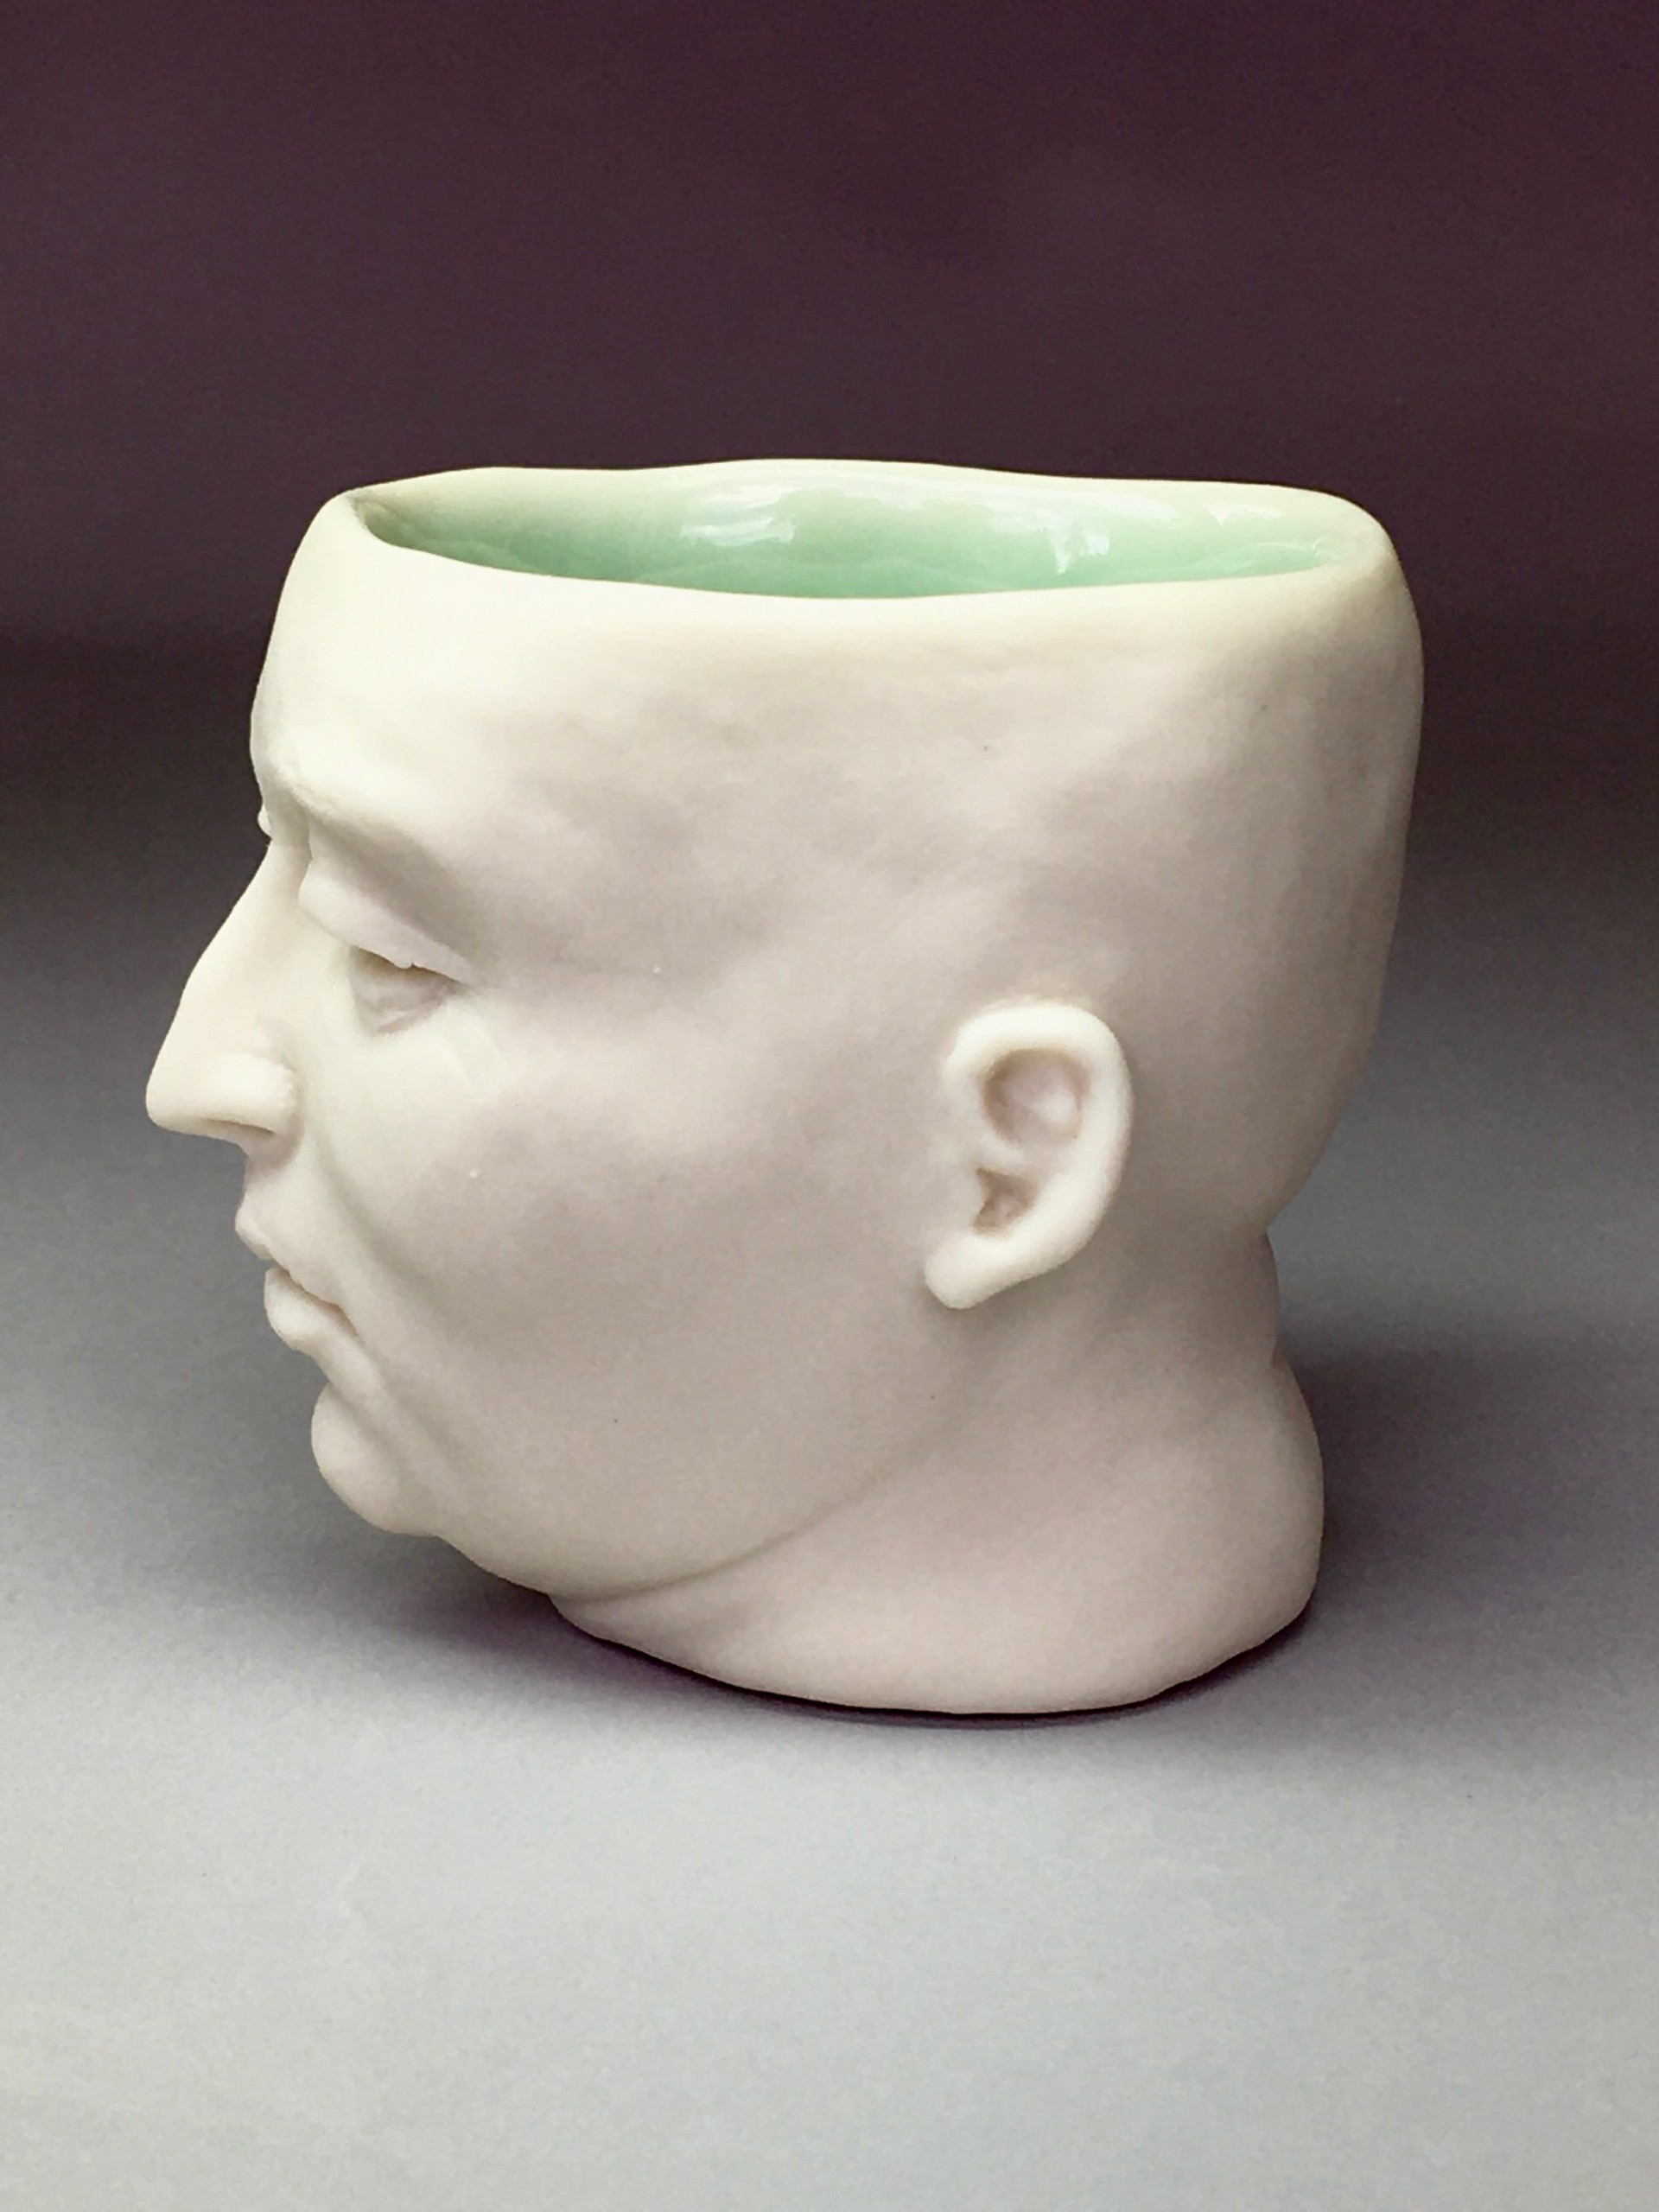 """""""Somewhat Pissed-off Friend Shot Glass"""" (light green interior, eyes open) by Adrian Arleo"""